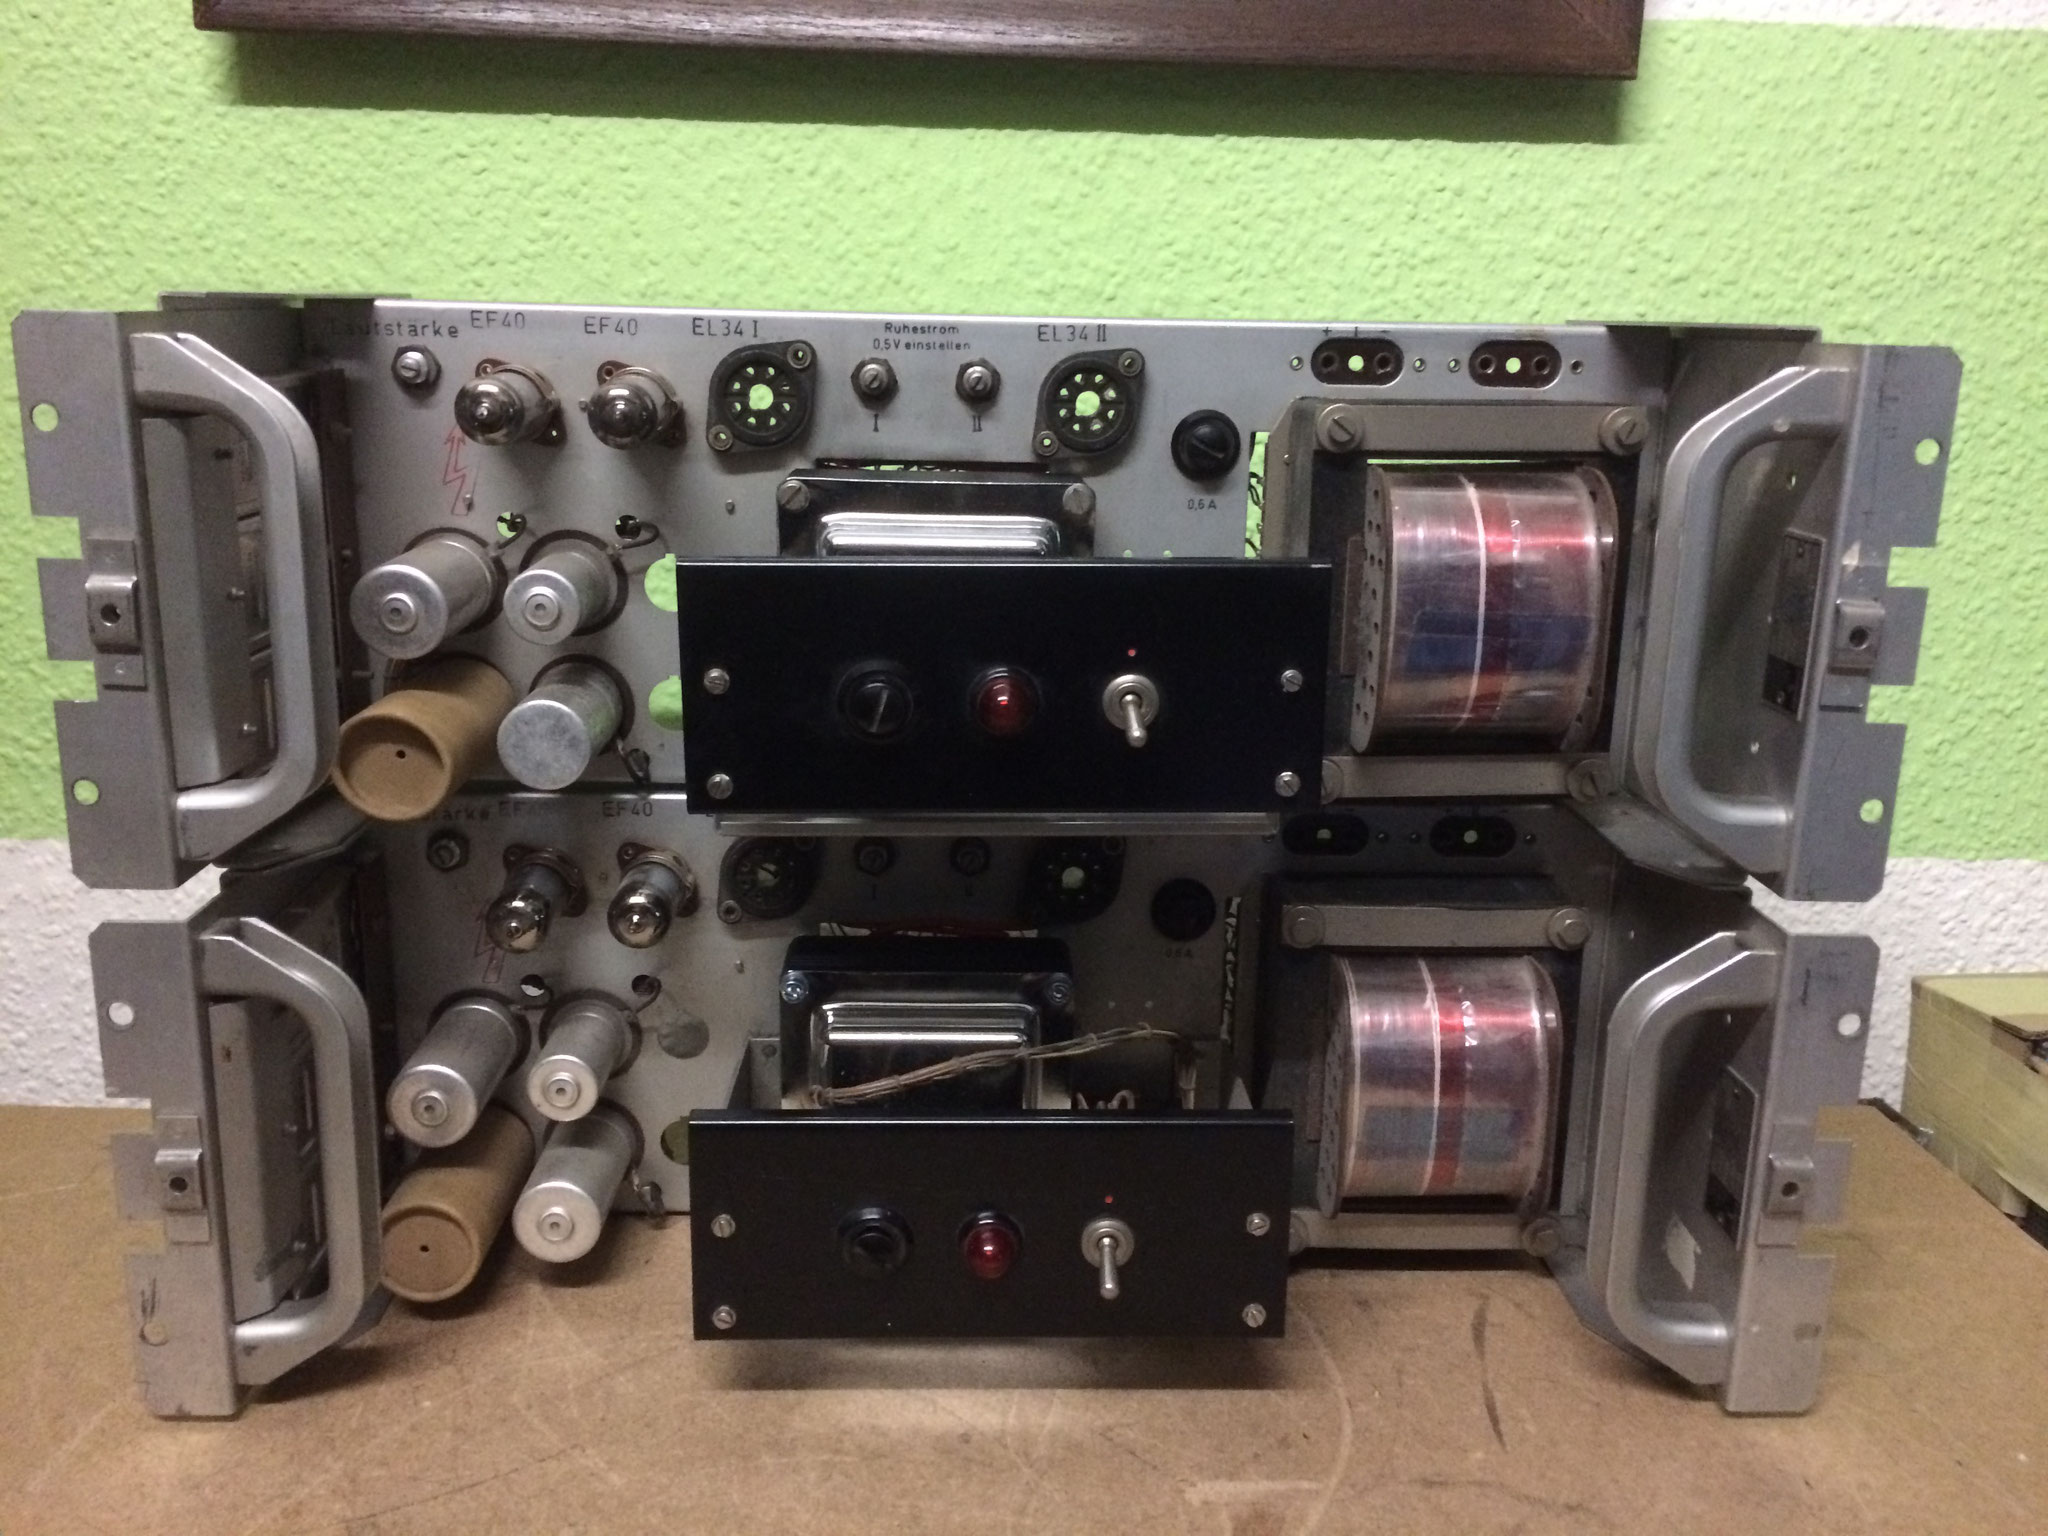 SIEMENS 6 S ELA tube amplifier with  2 x EL34 in PP mode